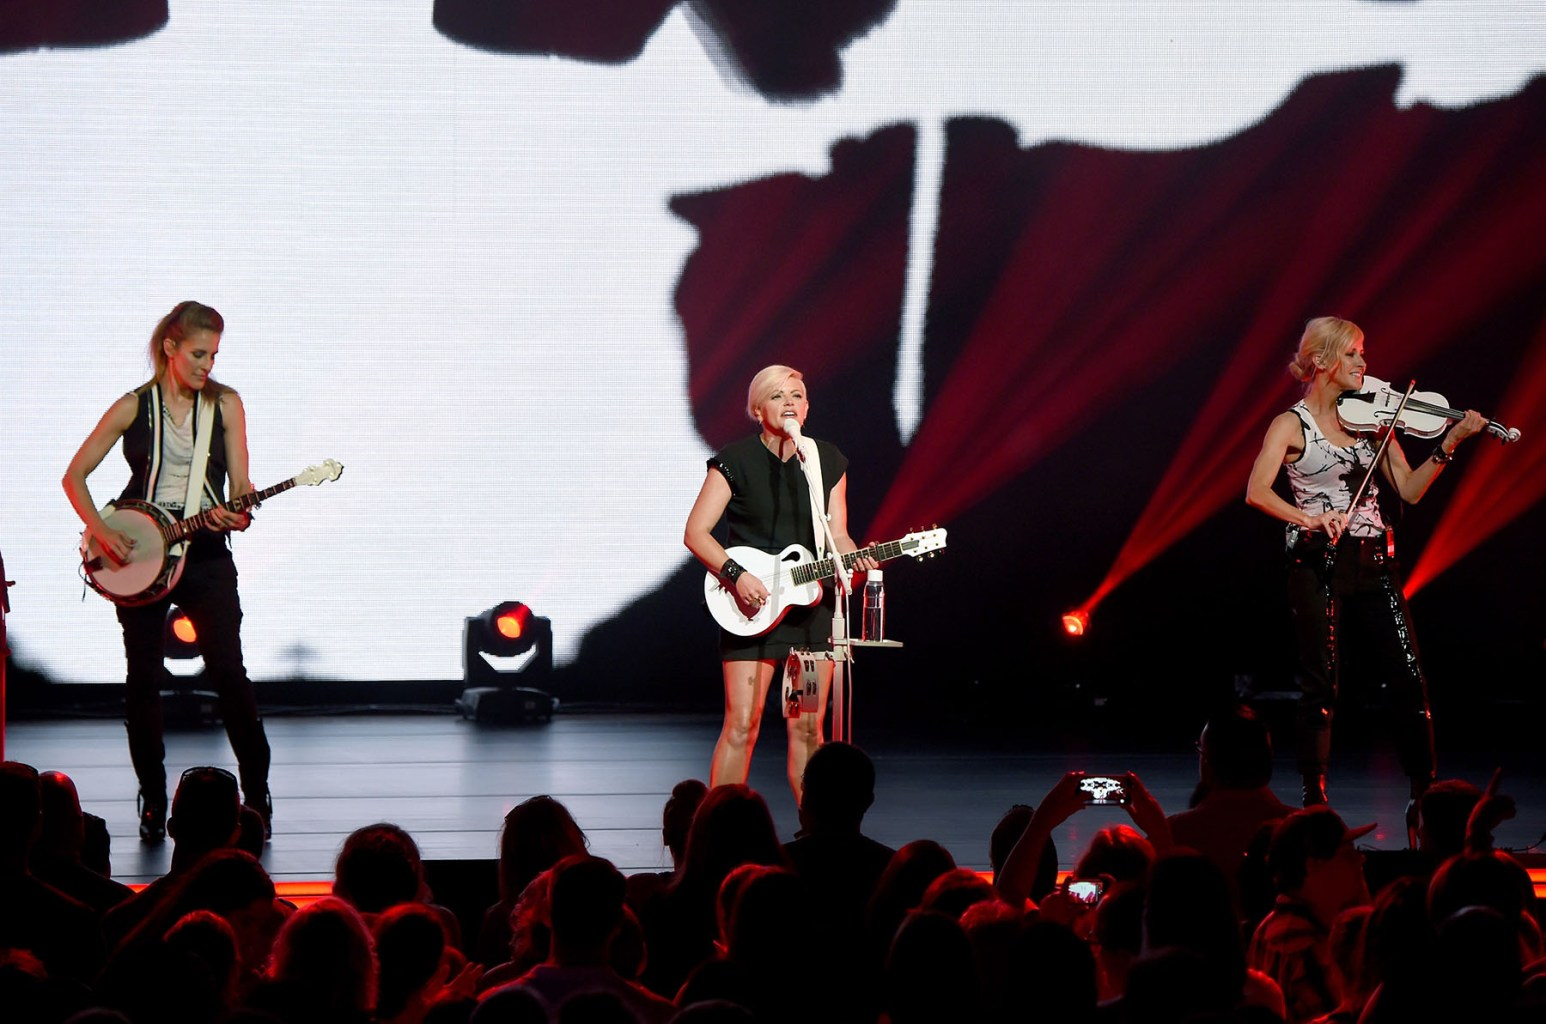 Dixie Chicks Change Their Name to 'The Chicks' Drop Protest Song